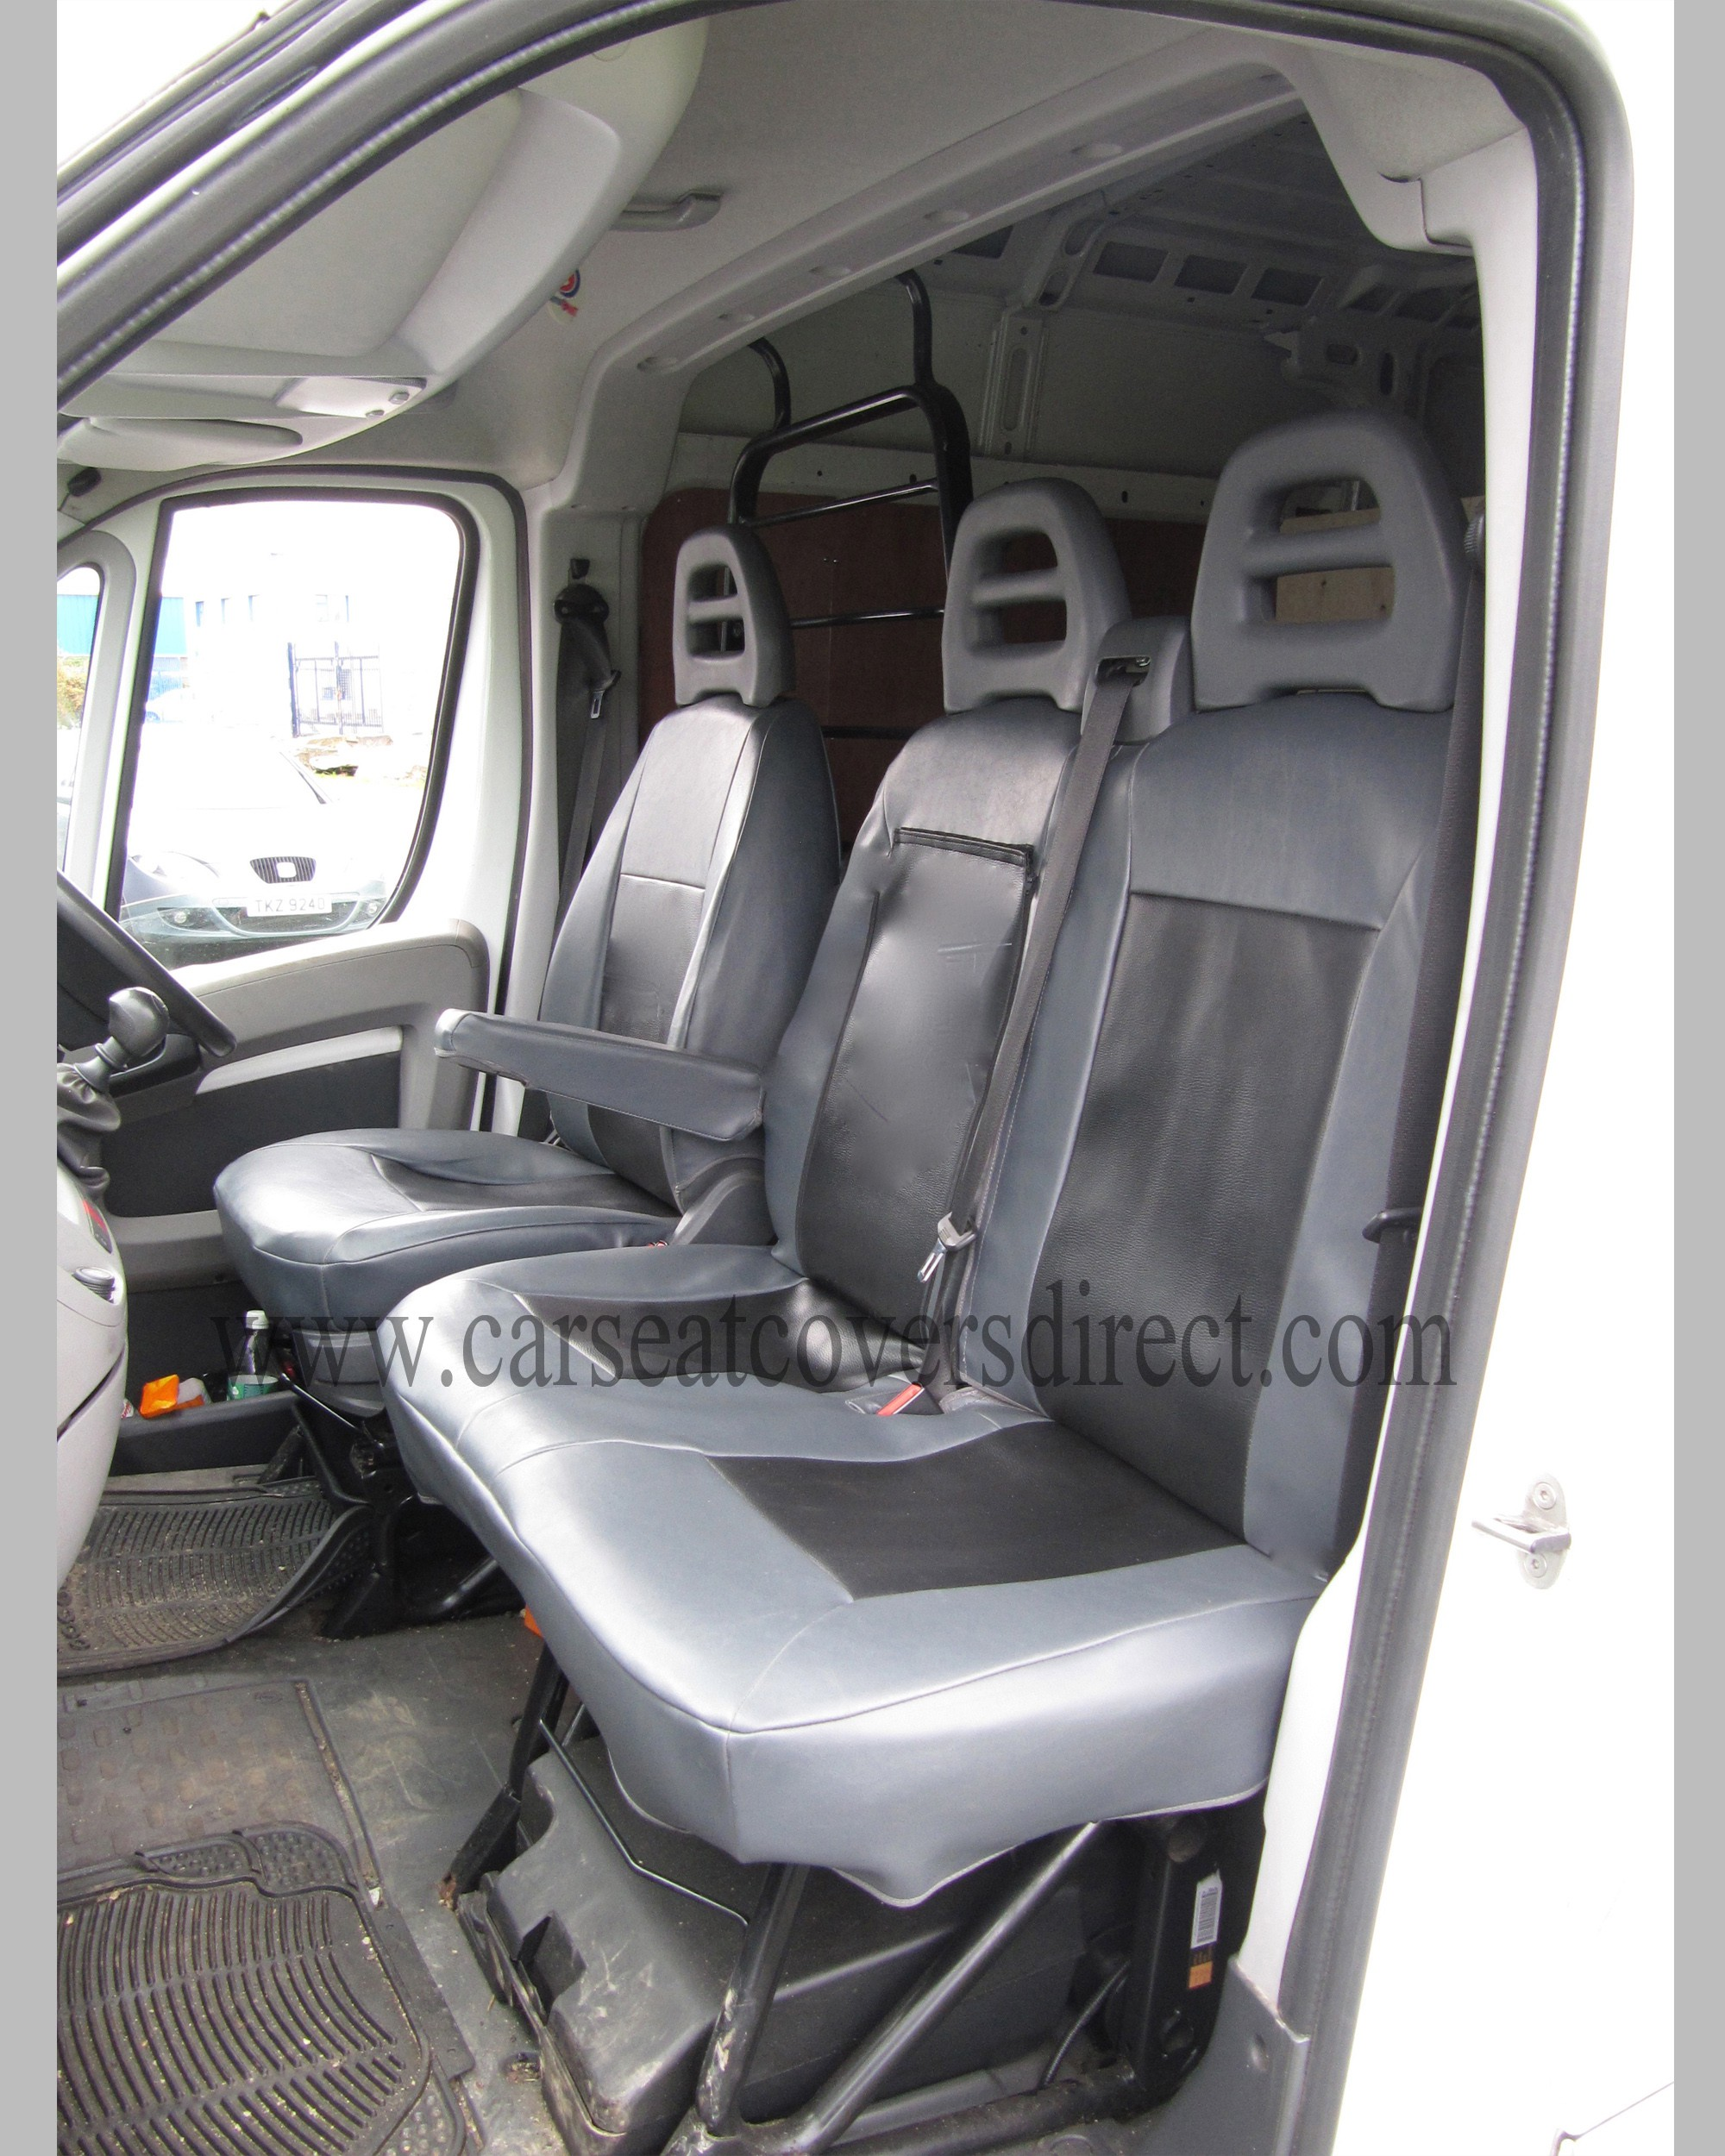 citroen relay van seat covers custom van seat covers custom tailored seat covers car seat